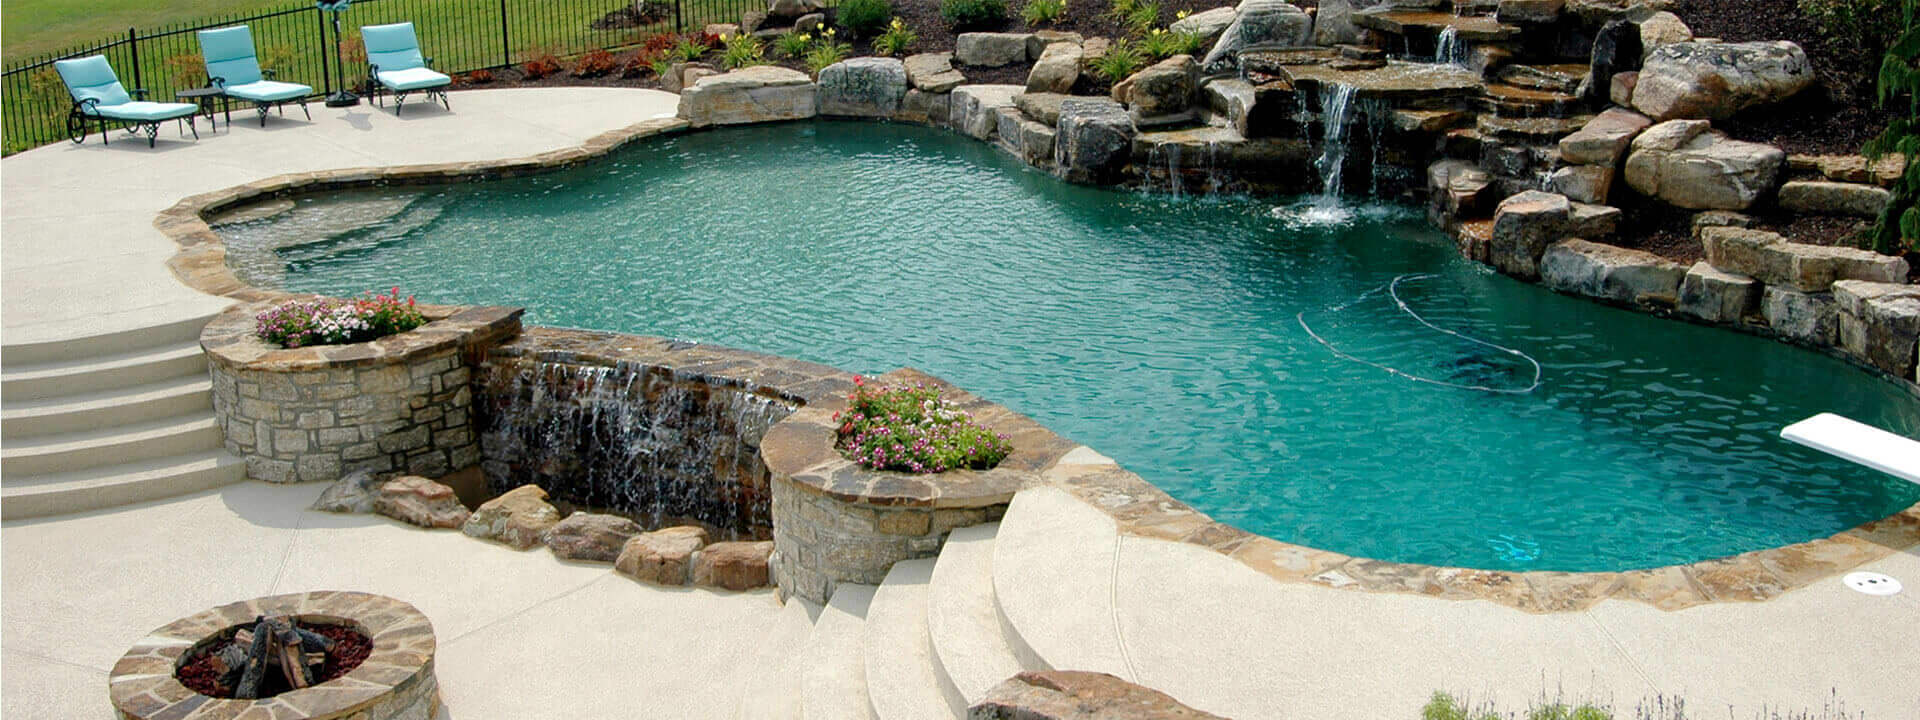 Concrete Pool Decks Indianapolis Resurfacing Repair Refinishing Pool Deck  Resurfacing Pool Decks Concrete Patios Indianapolis In Resurfacing